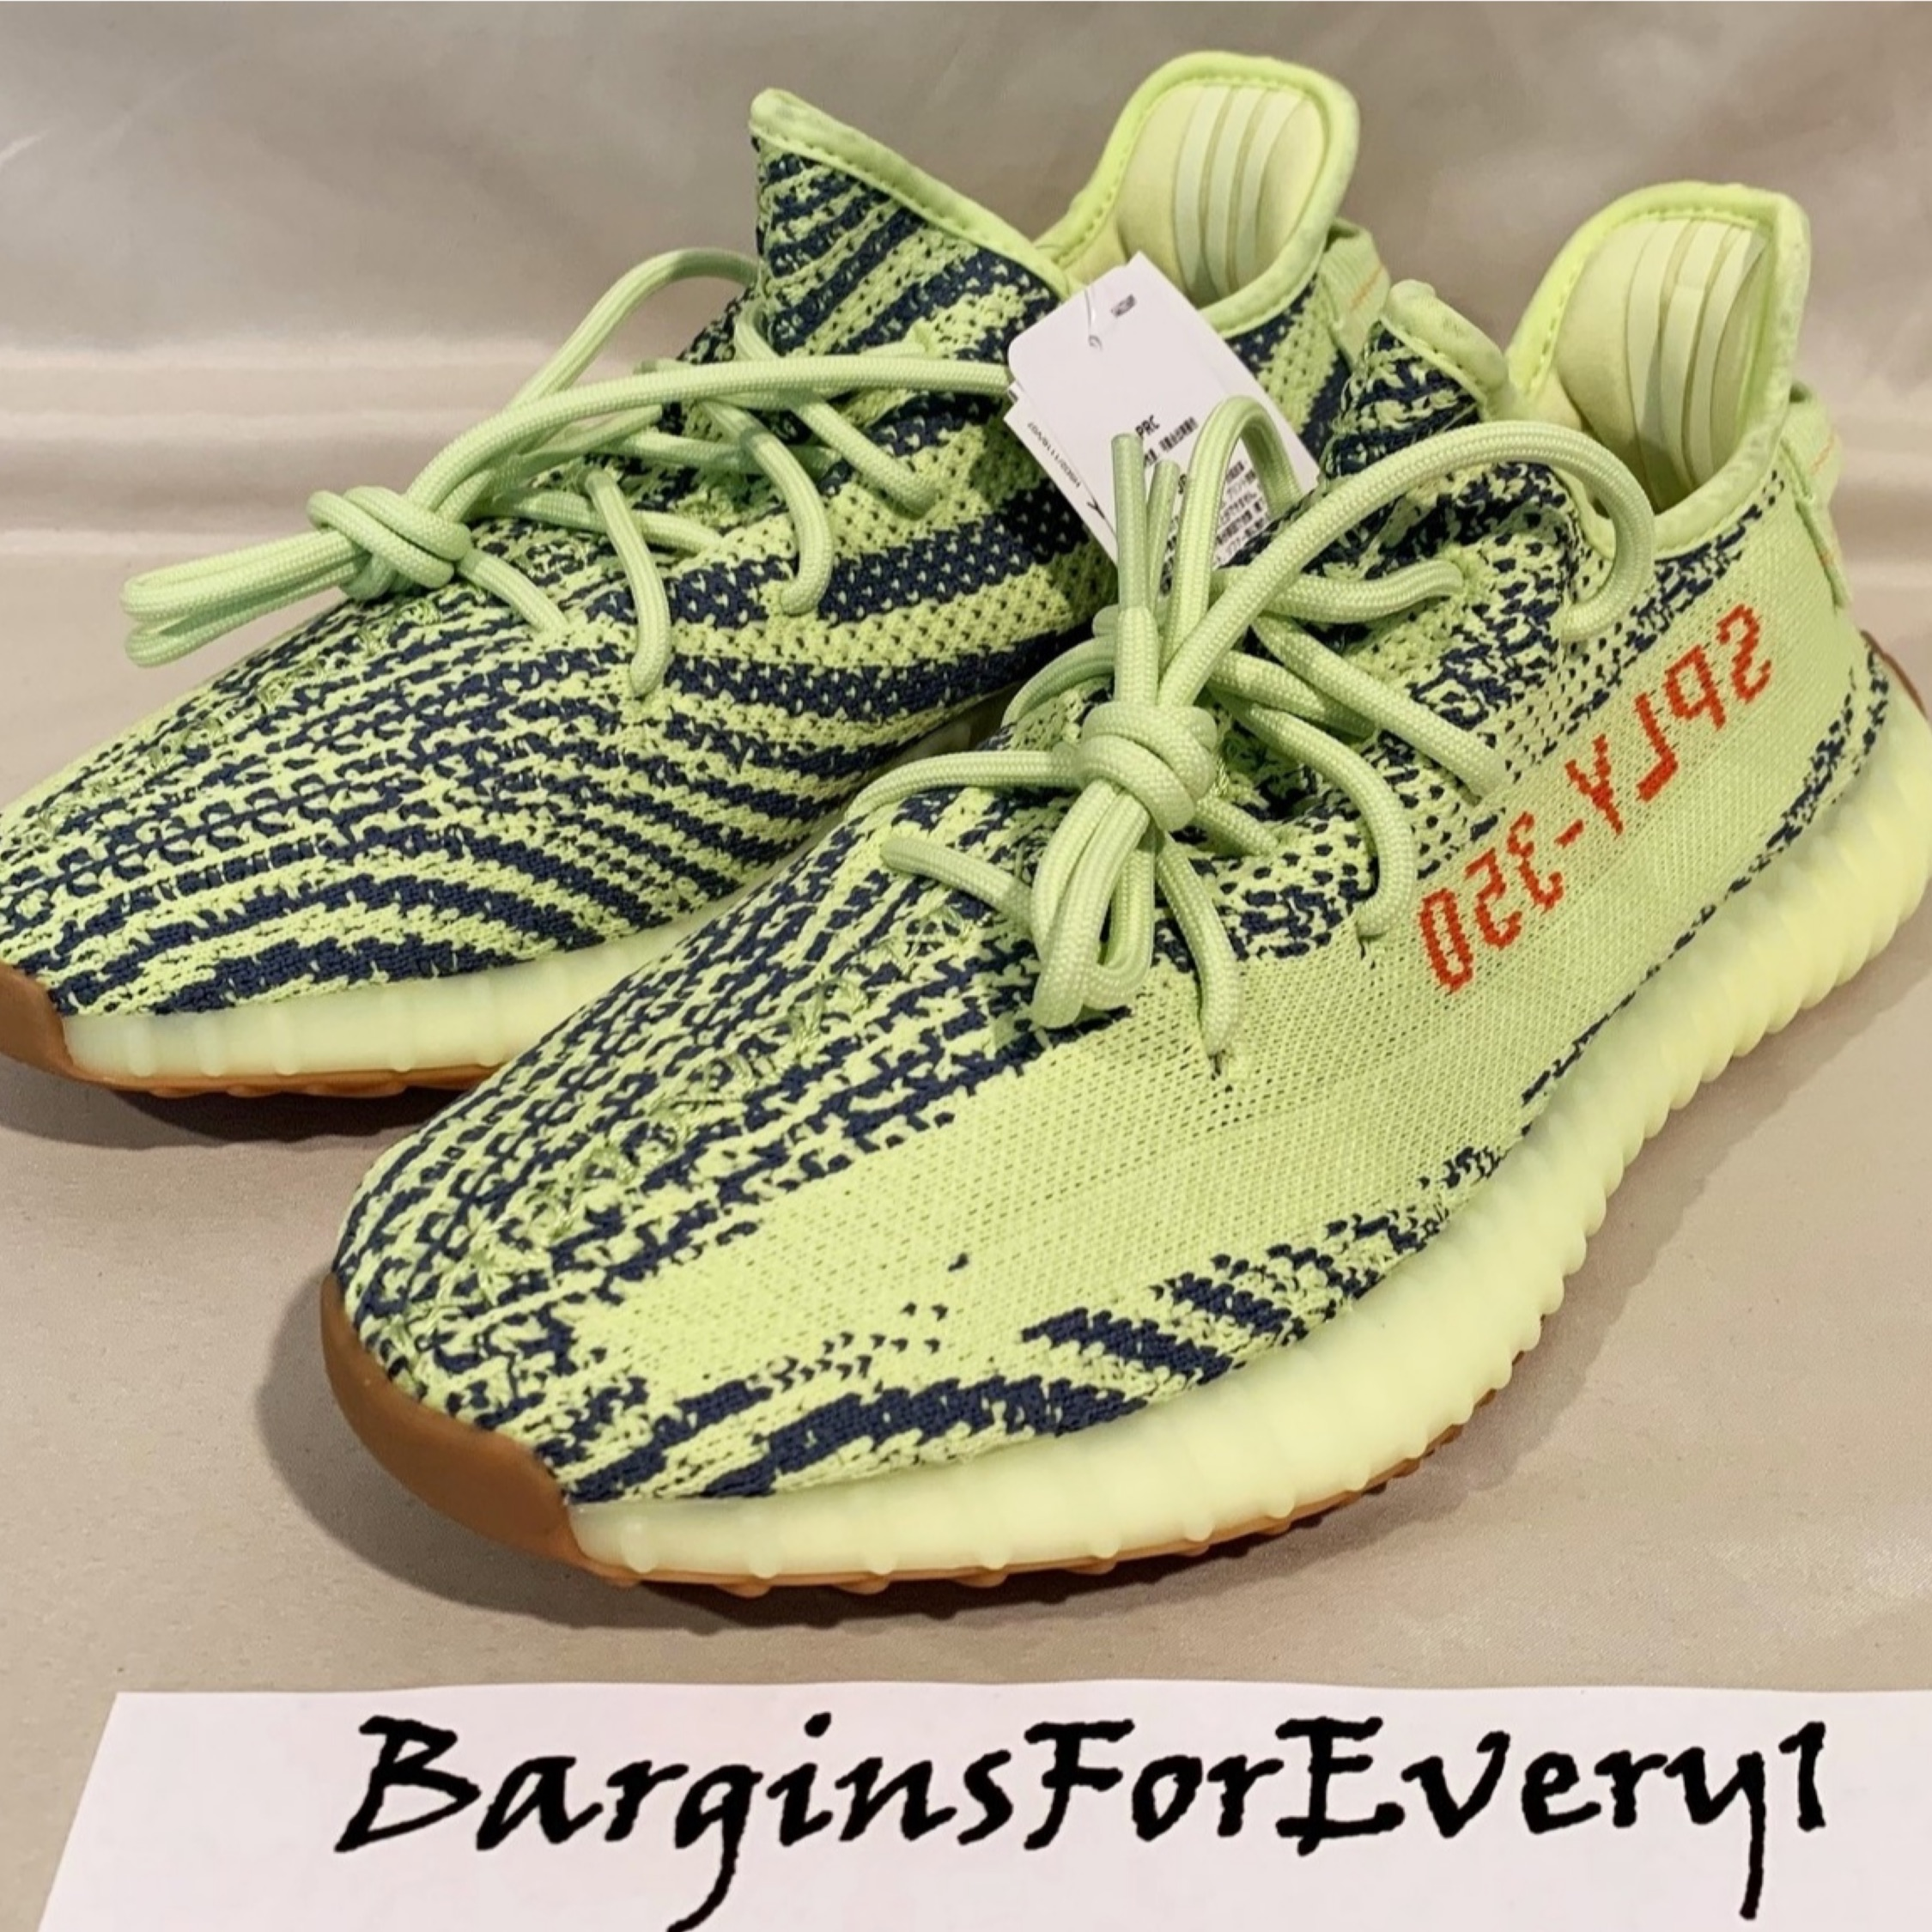 the best attitude 764e6 49014 New Men's Adidas Yeezy Boost 350 V2 Frozen Yellow